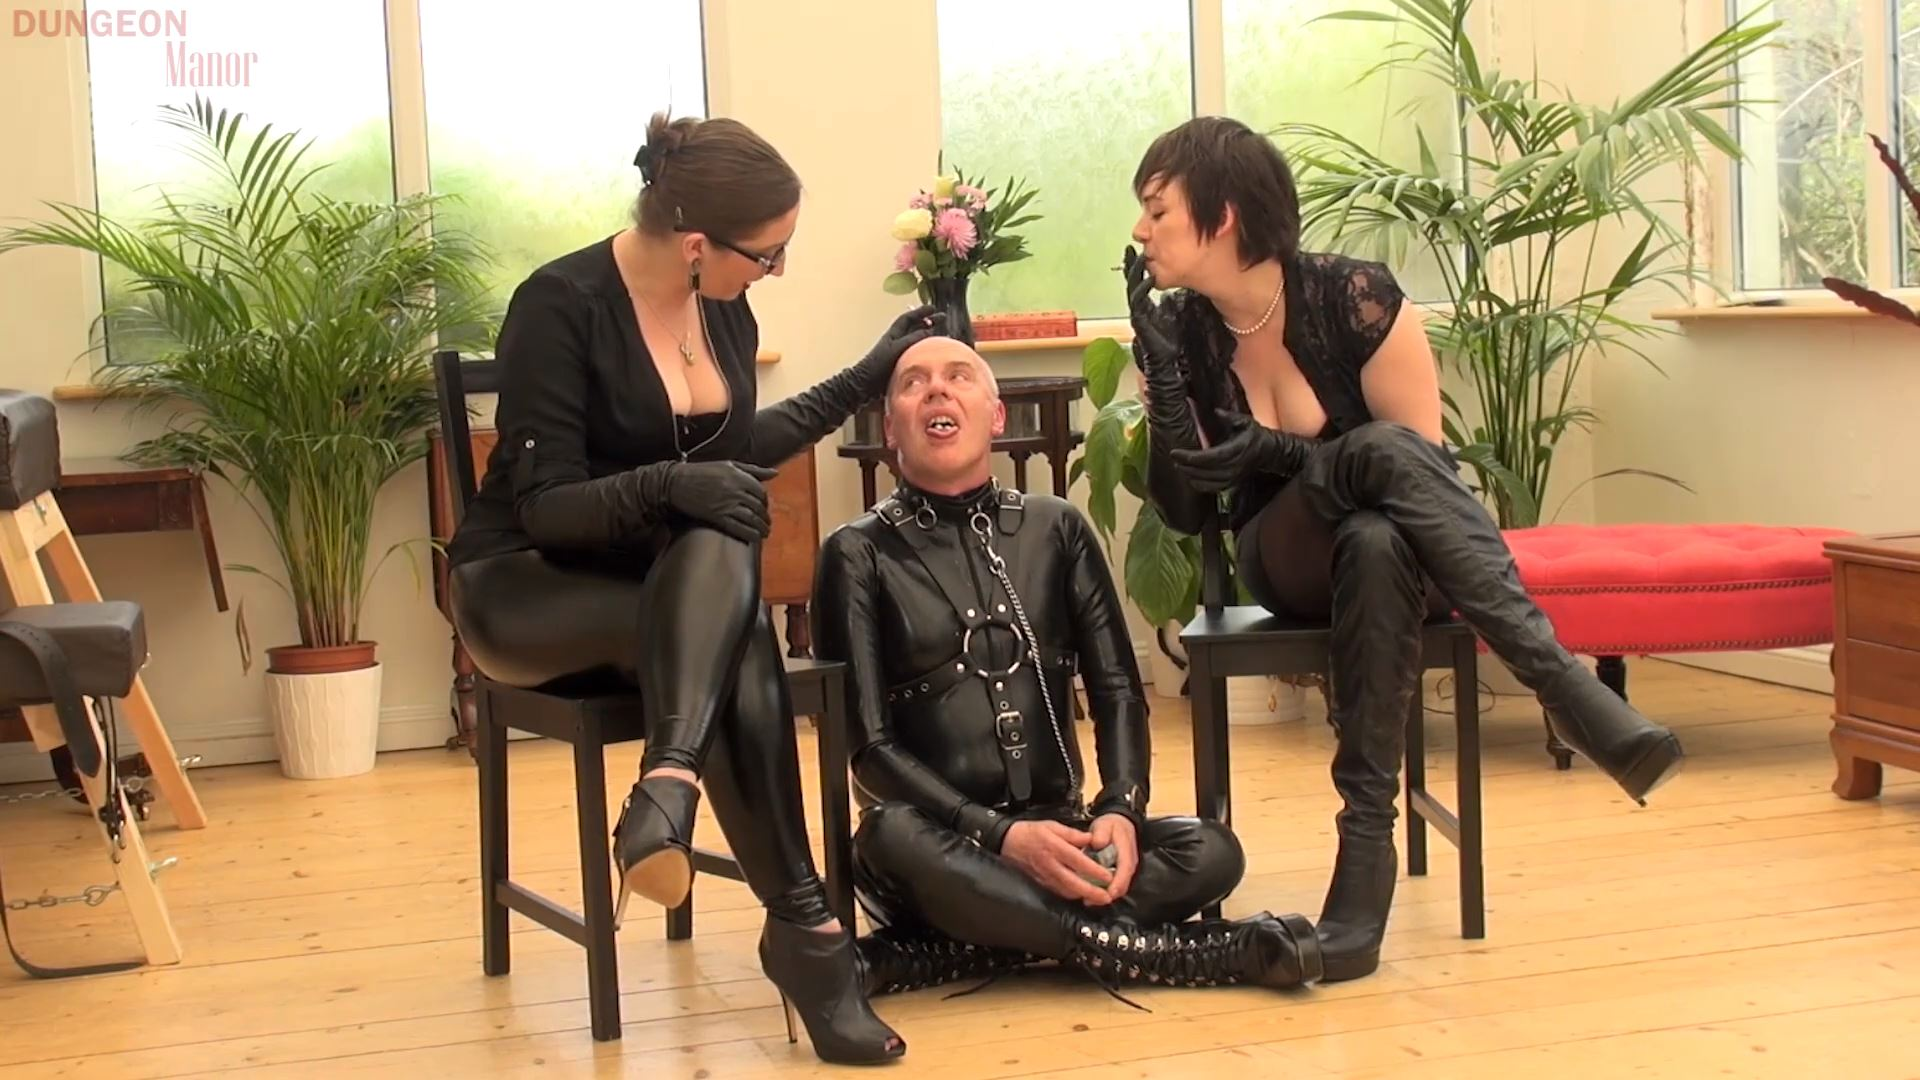 A dungeon Manor Production 391 - MISTRESS EVILYNE - FULL HD/1080p/MP4